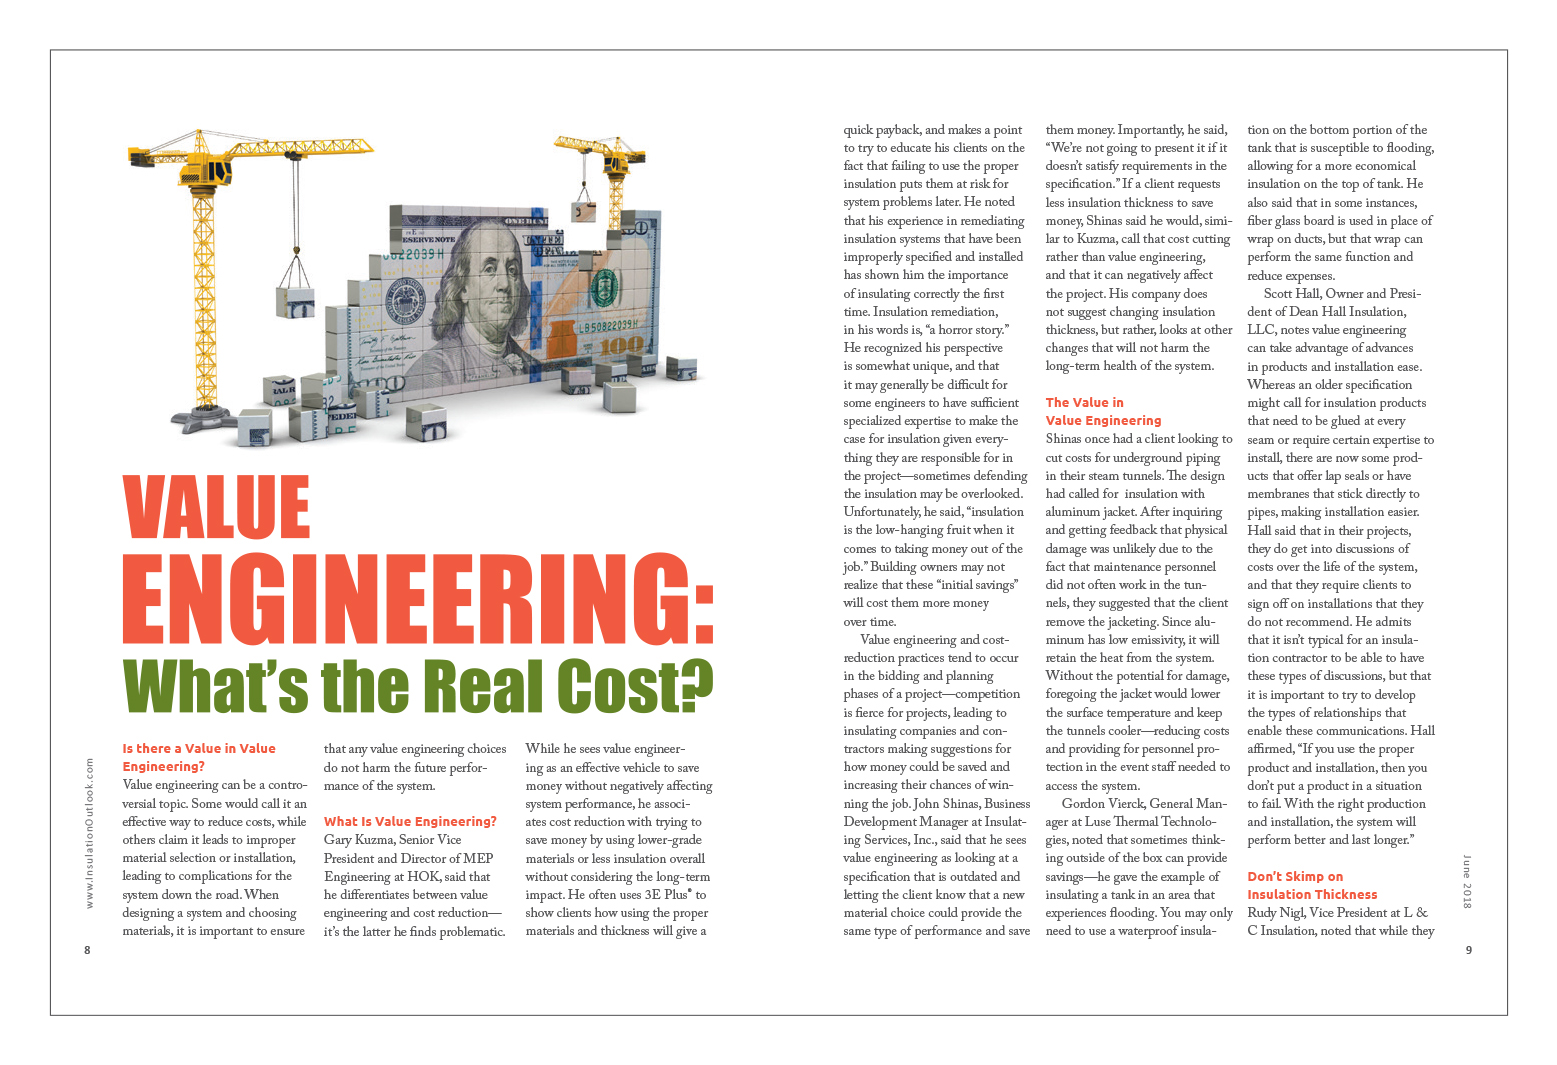 c8b93560d When designing a system and choosing materials, it is important to ensure  that any value engineering choices do not harm the future performance of  the ...